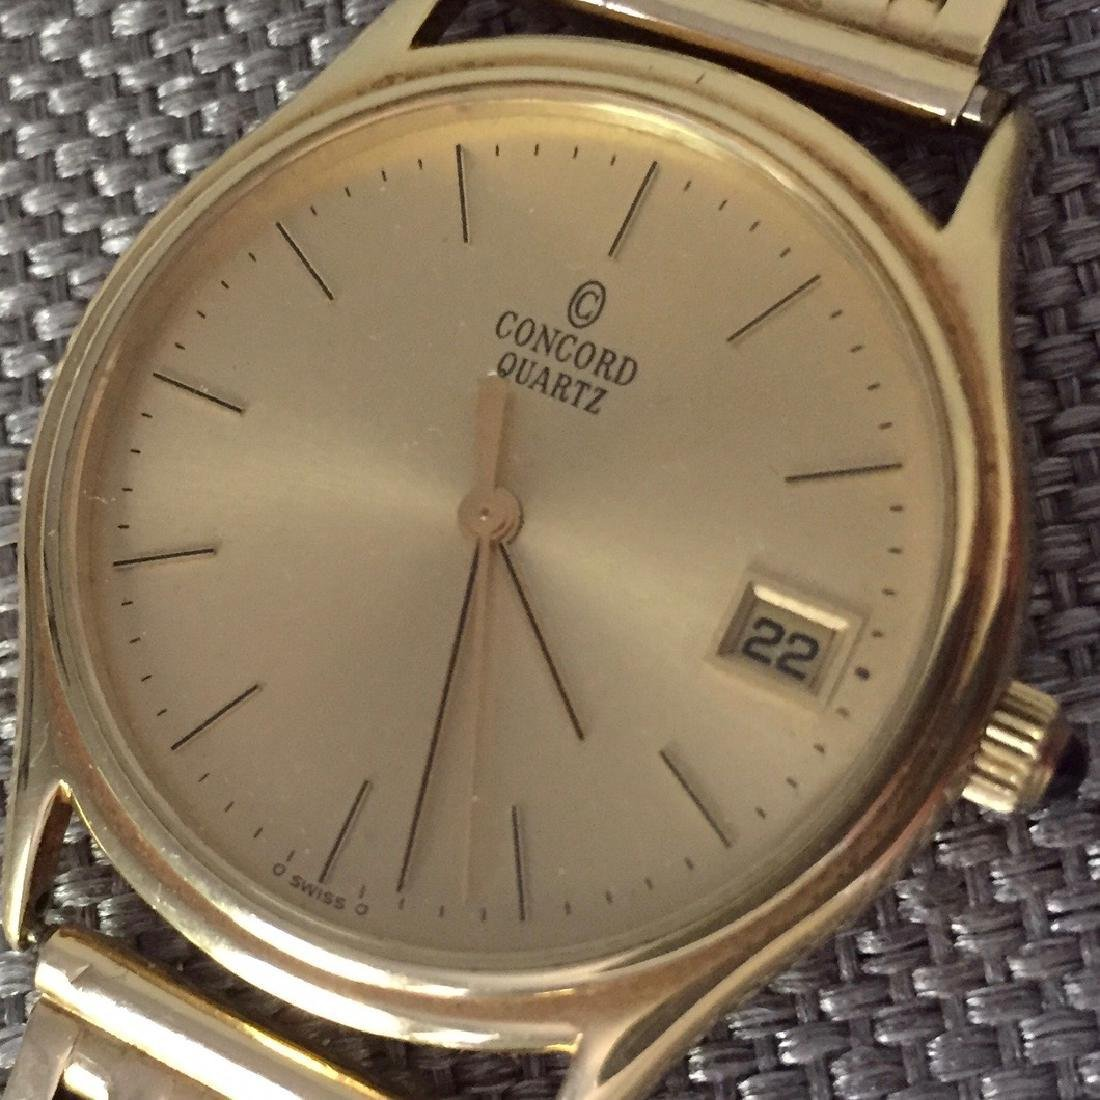 Vintage Concord La Scala Gold Men's Watch, 1970s - 2